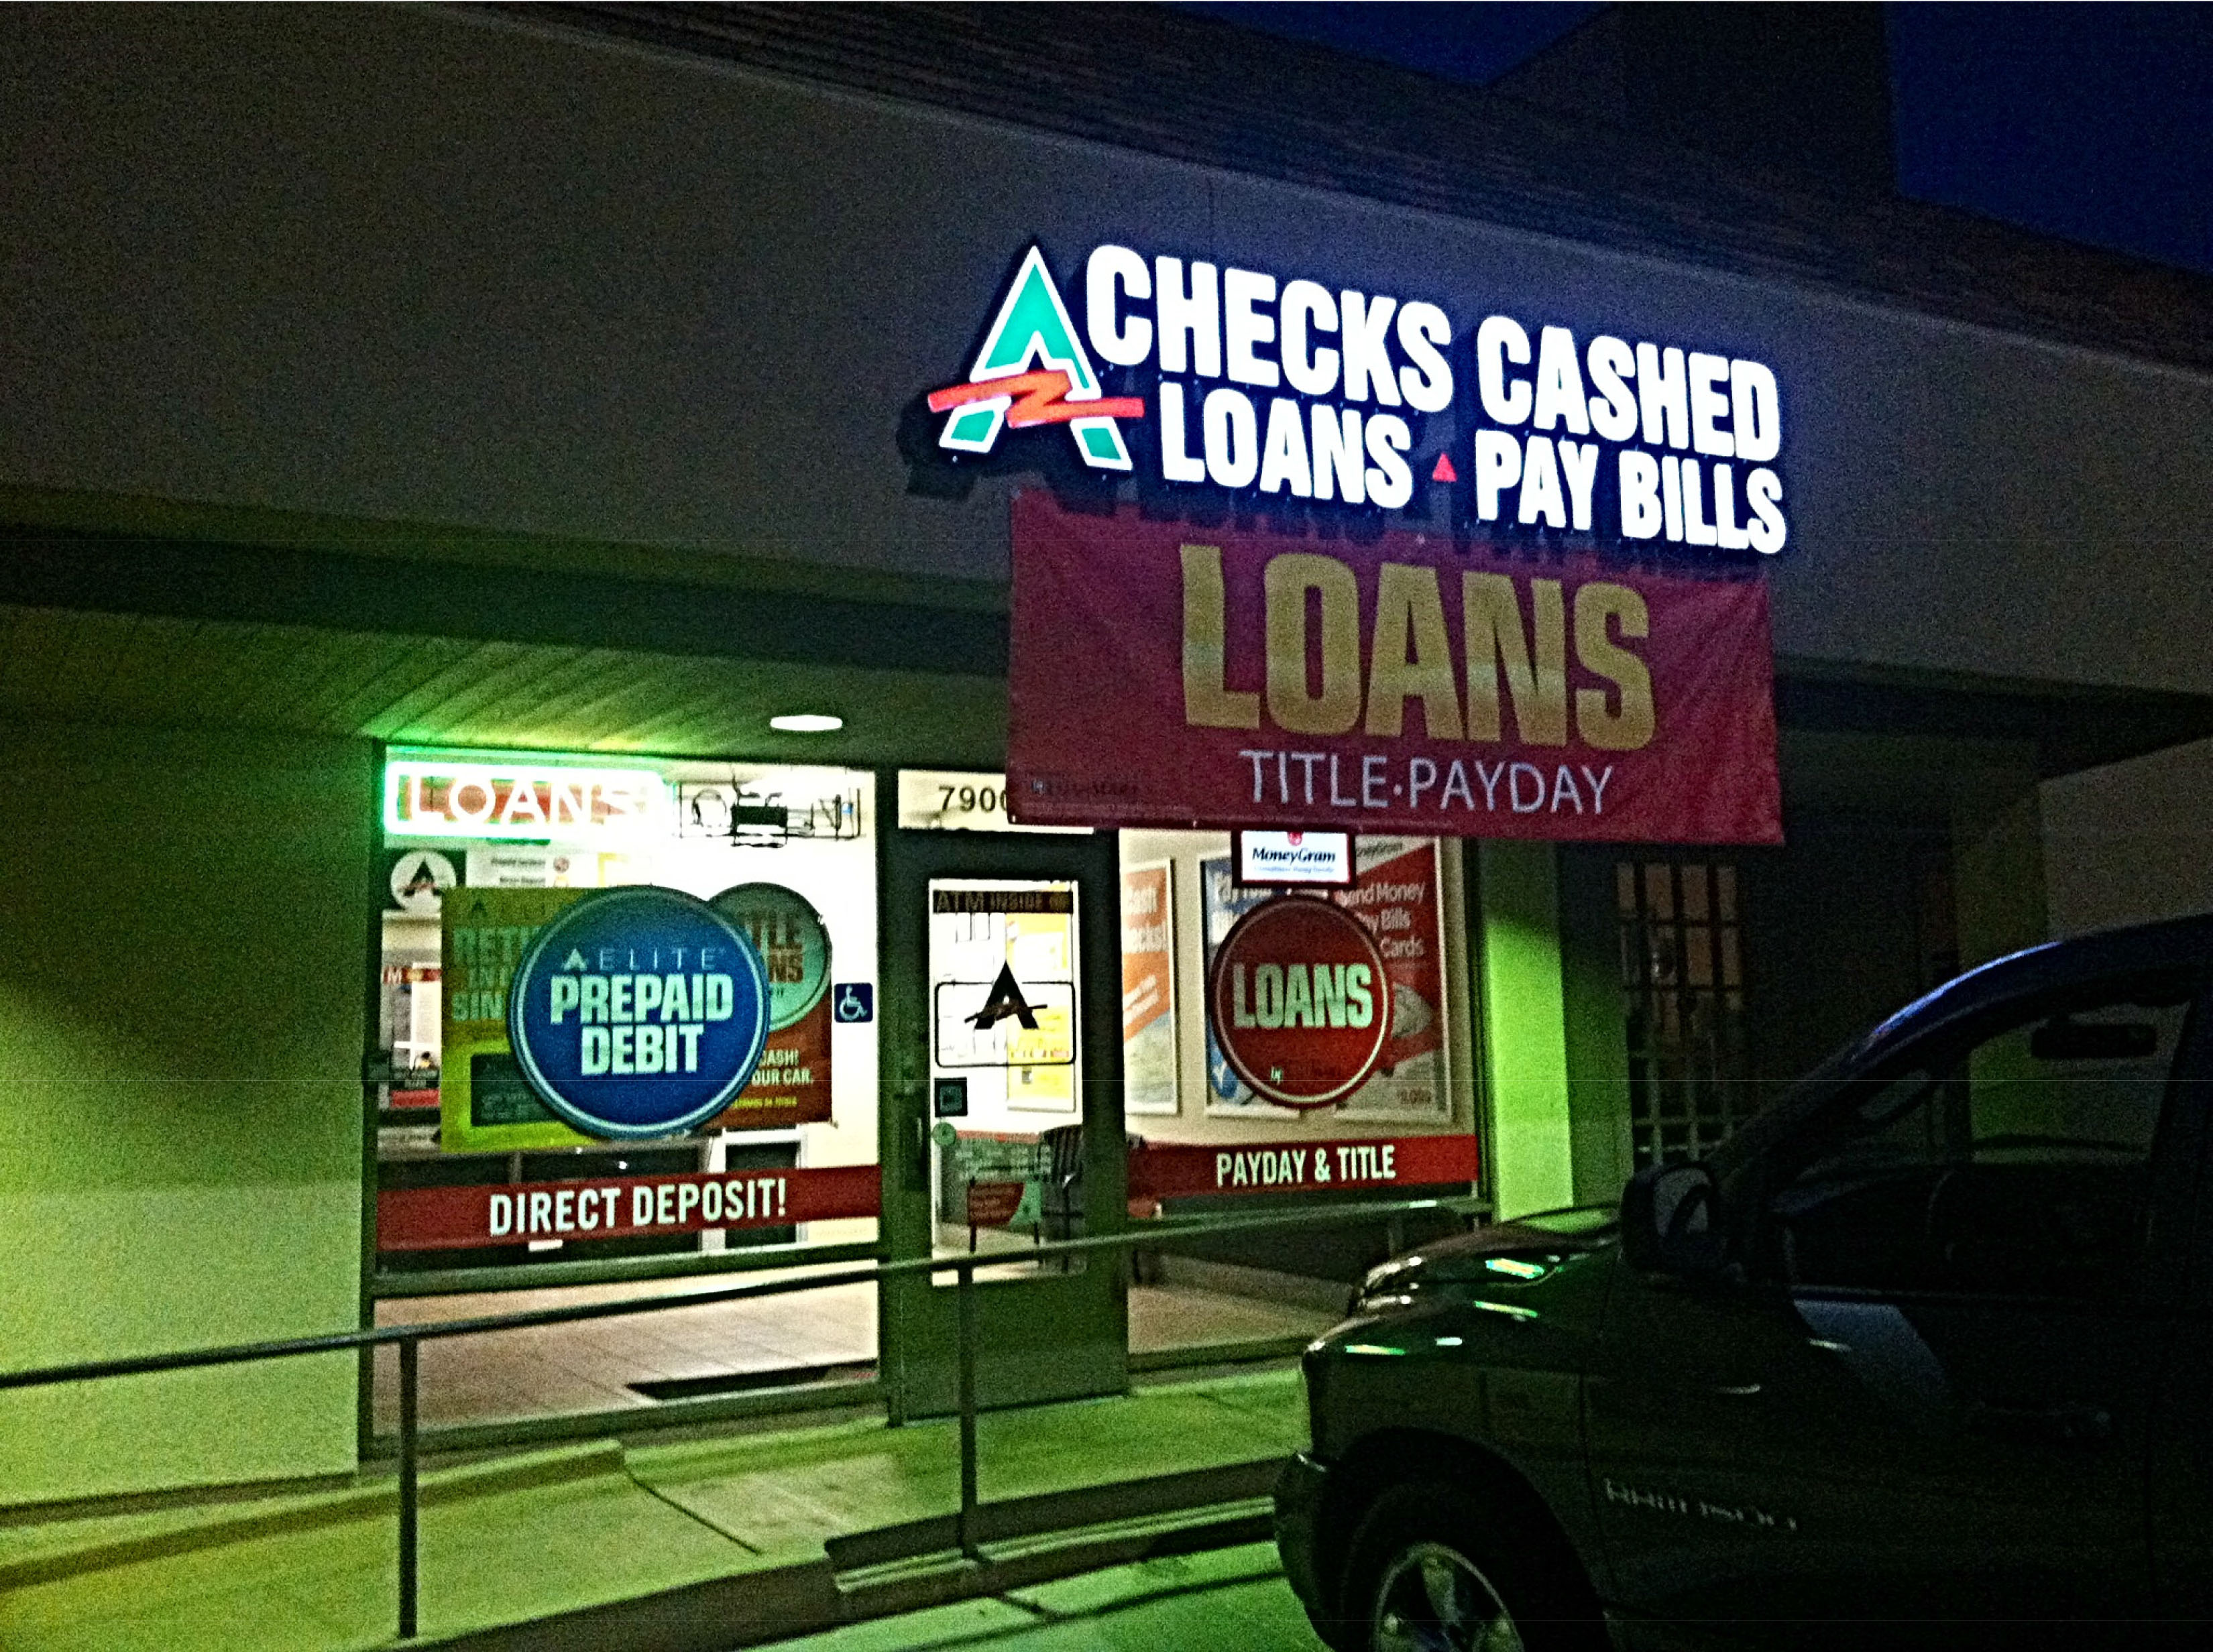 Payday loan bedford ohio image 8